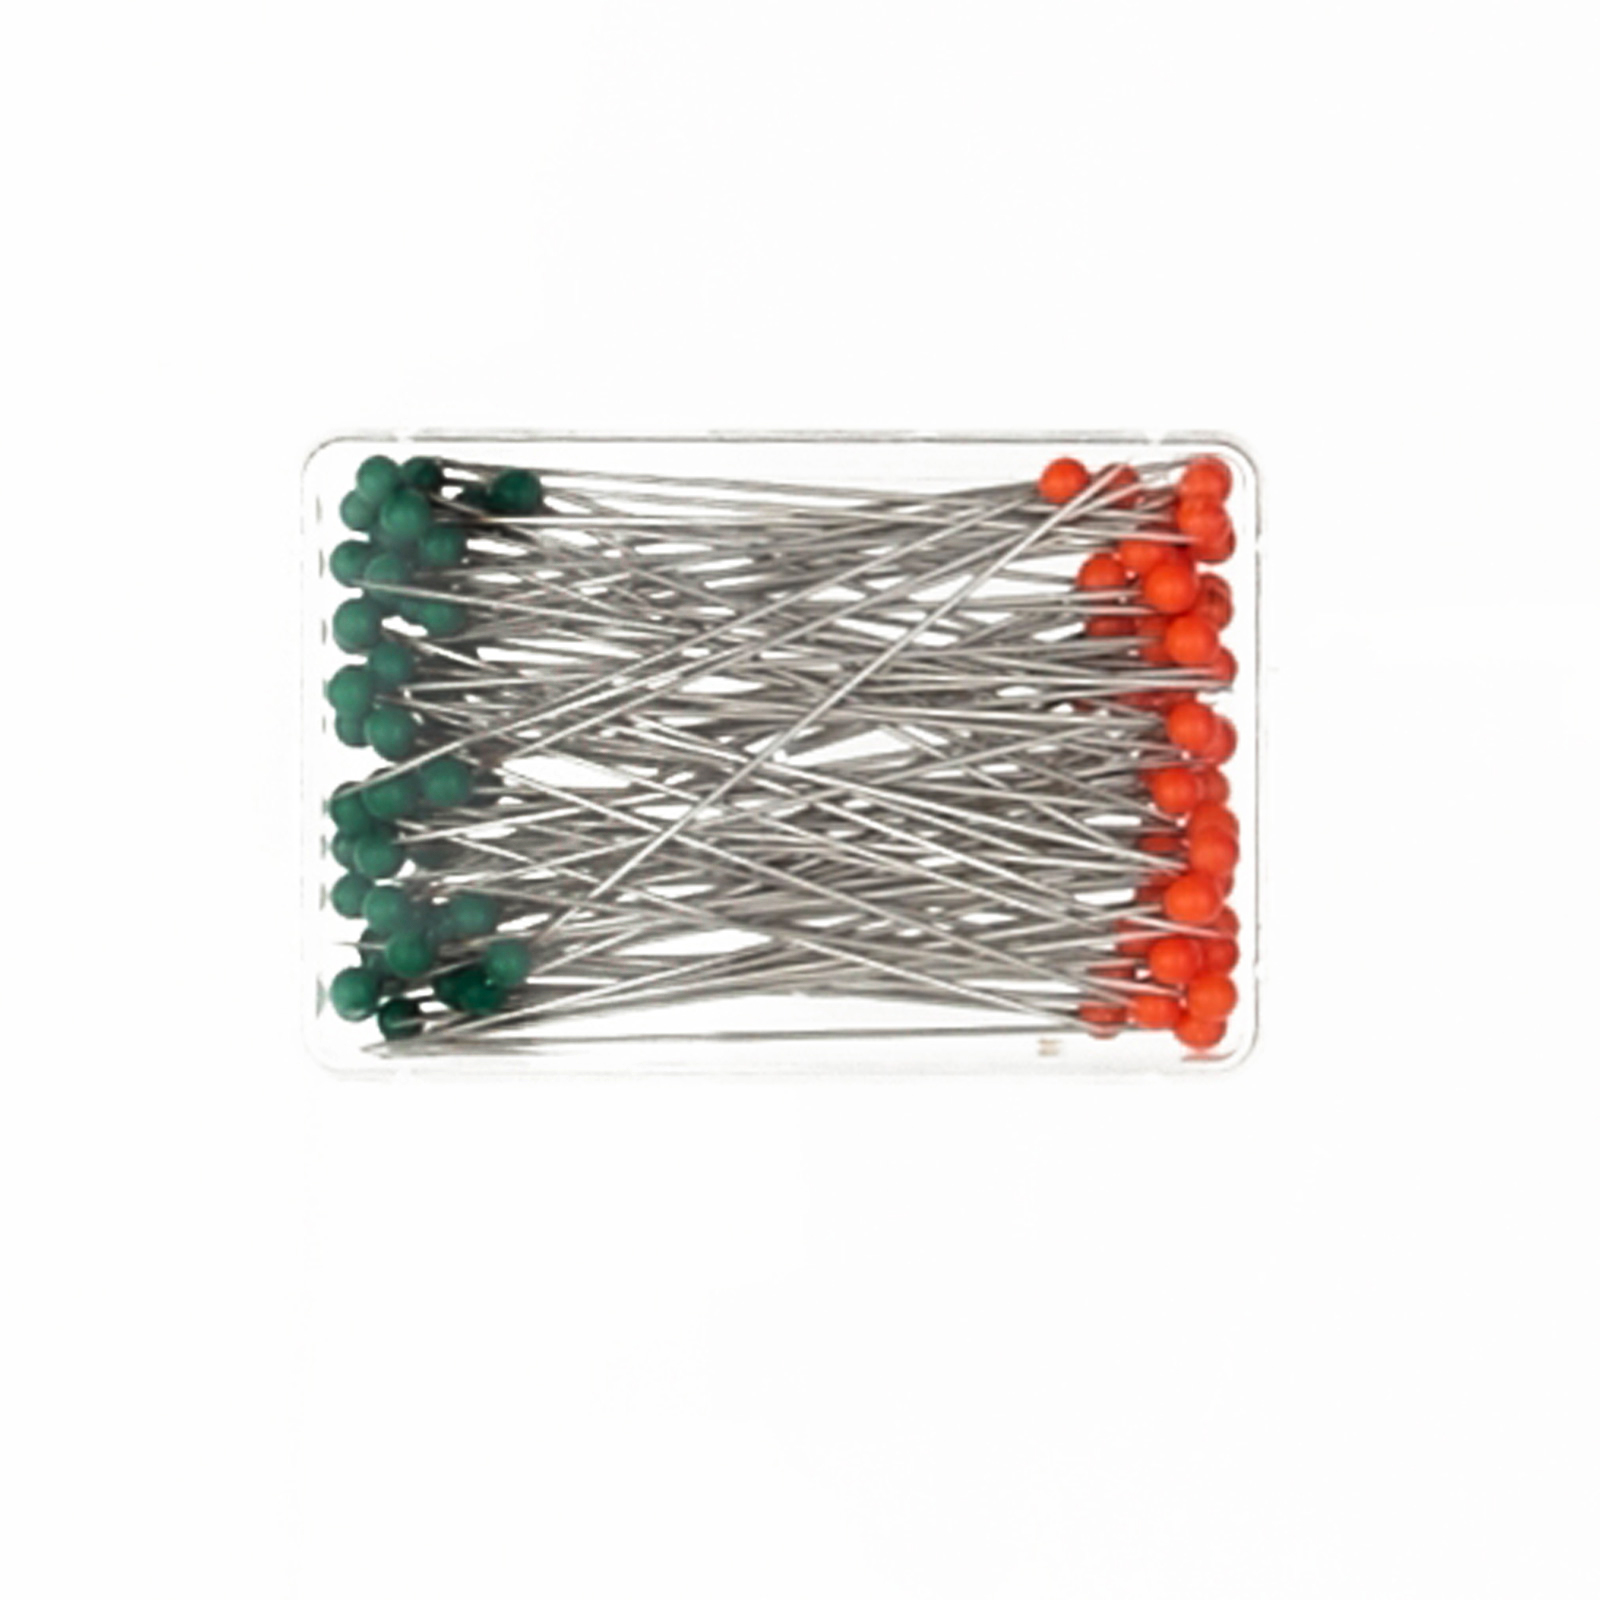 Image of Clover Box of Quilting 48mm Pins - 100/box